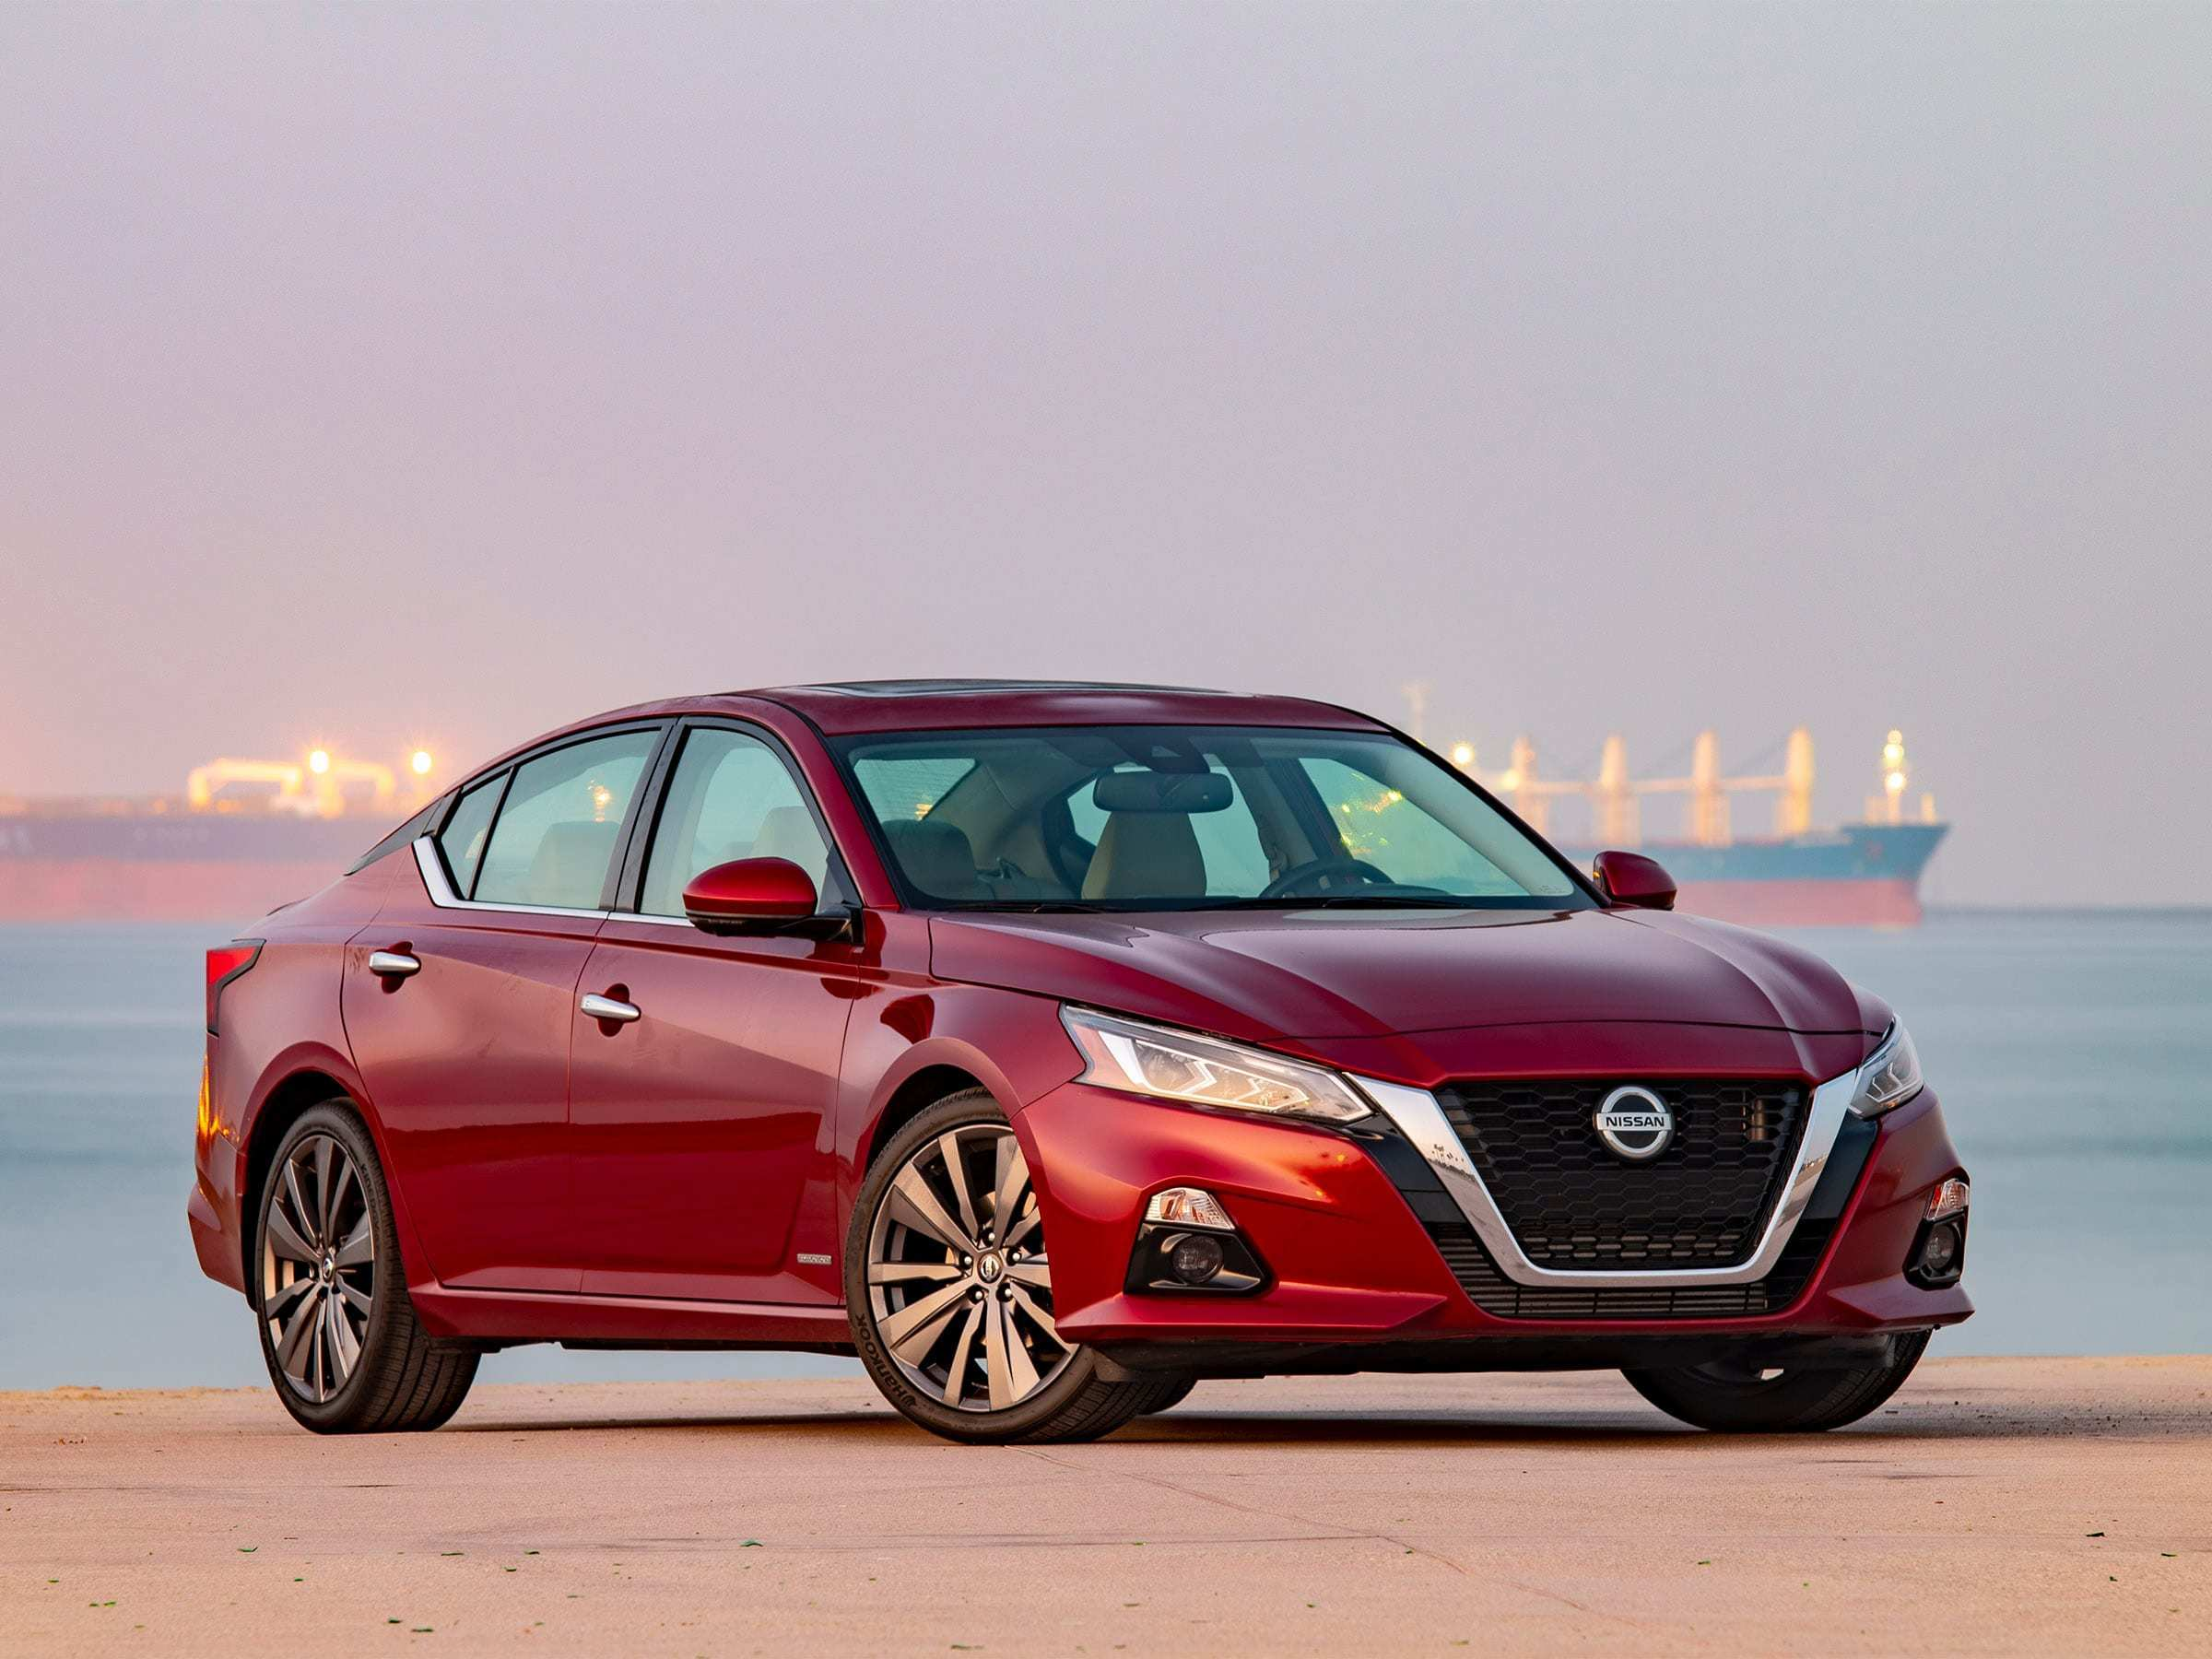 21 All New The 2019 Nissan Altima Horsepower First Drive Pricing by The 2019 Nissan Altima Horsepower First Drive